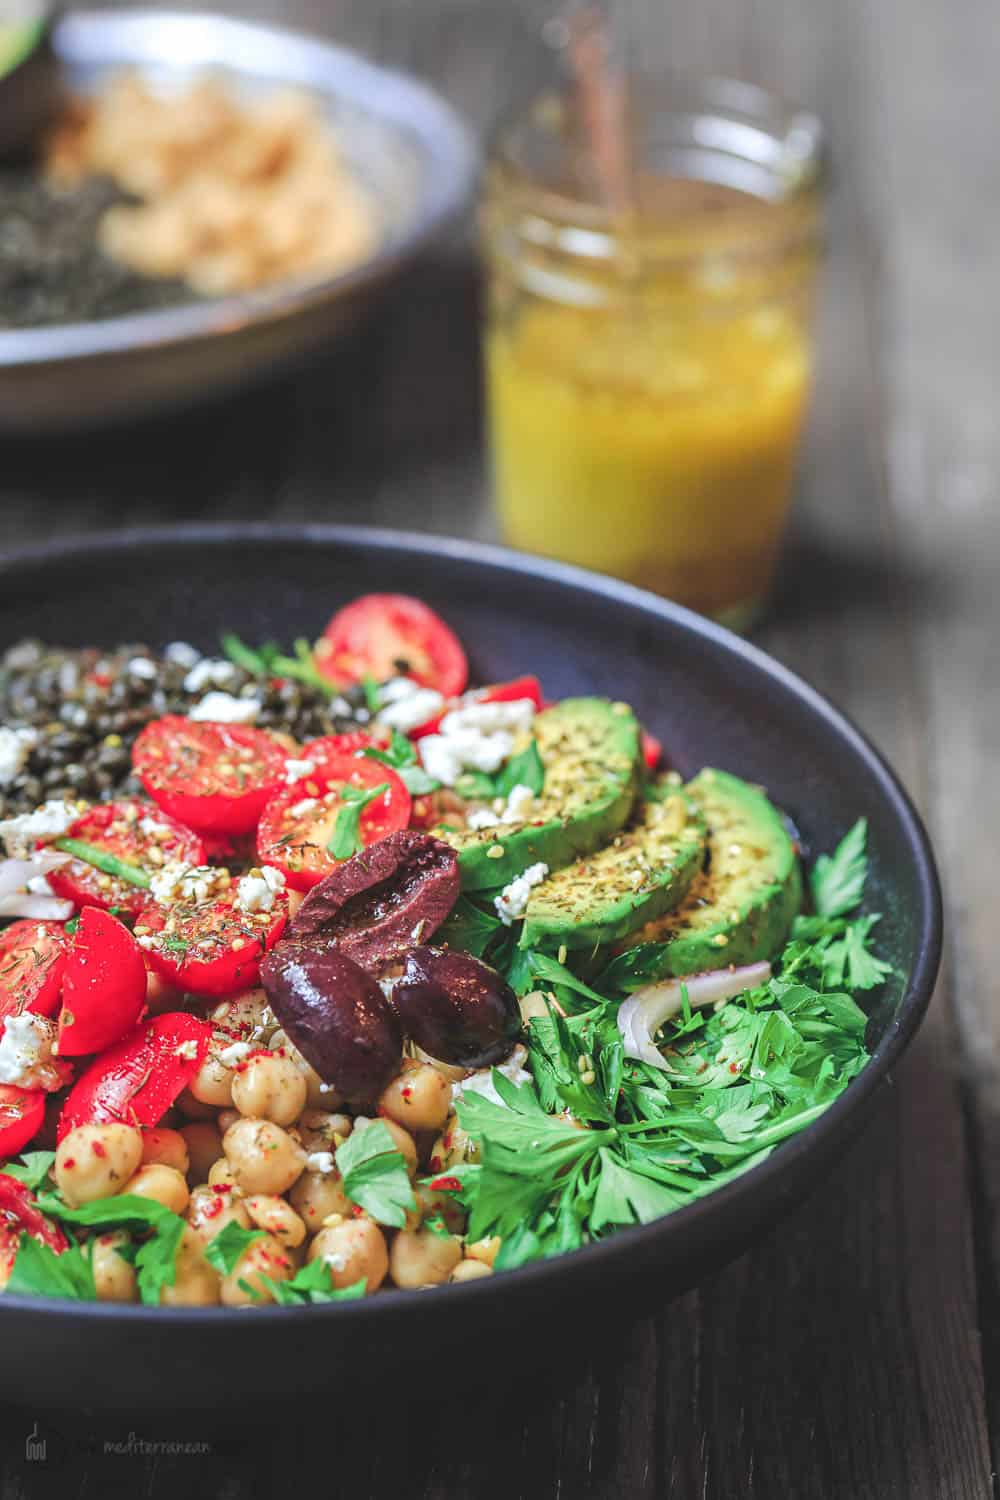 Mediterranean Grain Bowls with lentils, zucchini, avocados, tomatoes and topped with feta cheese.